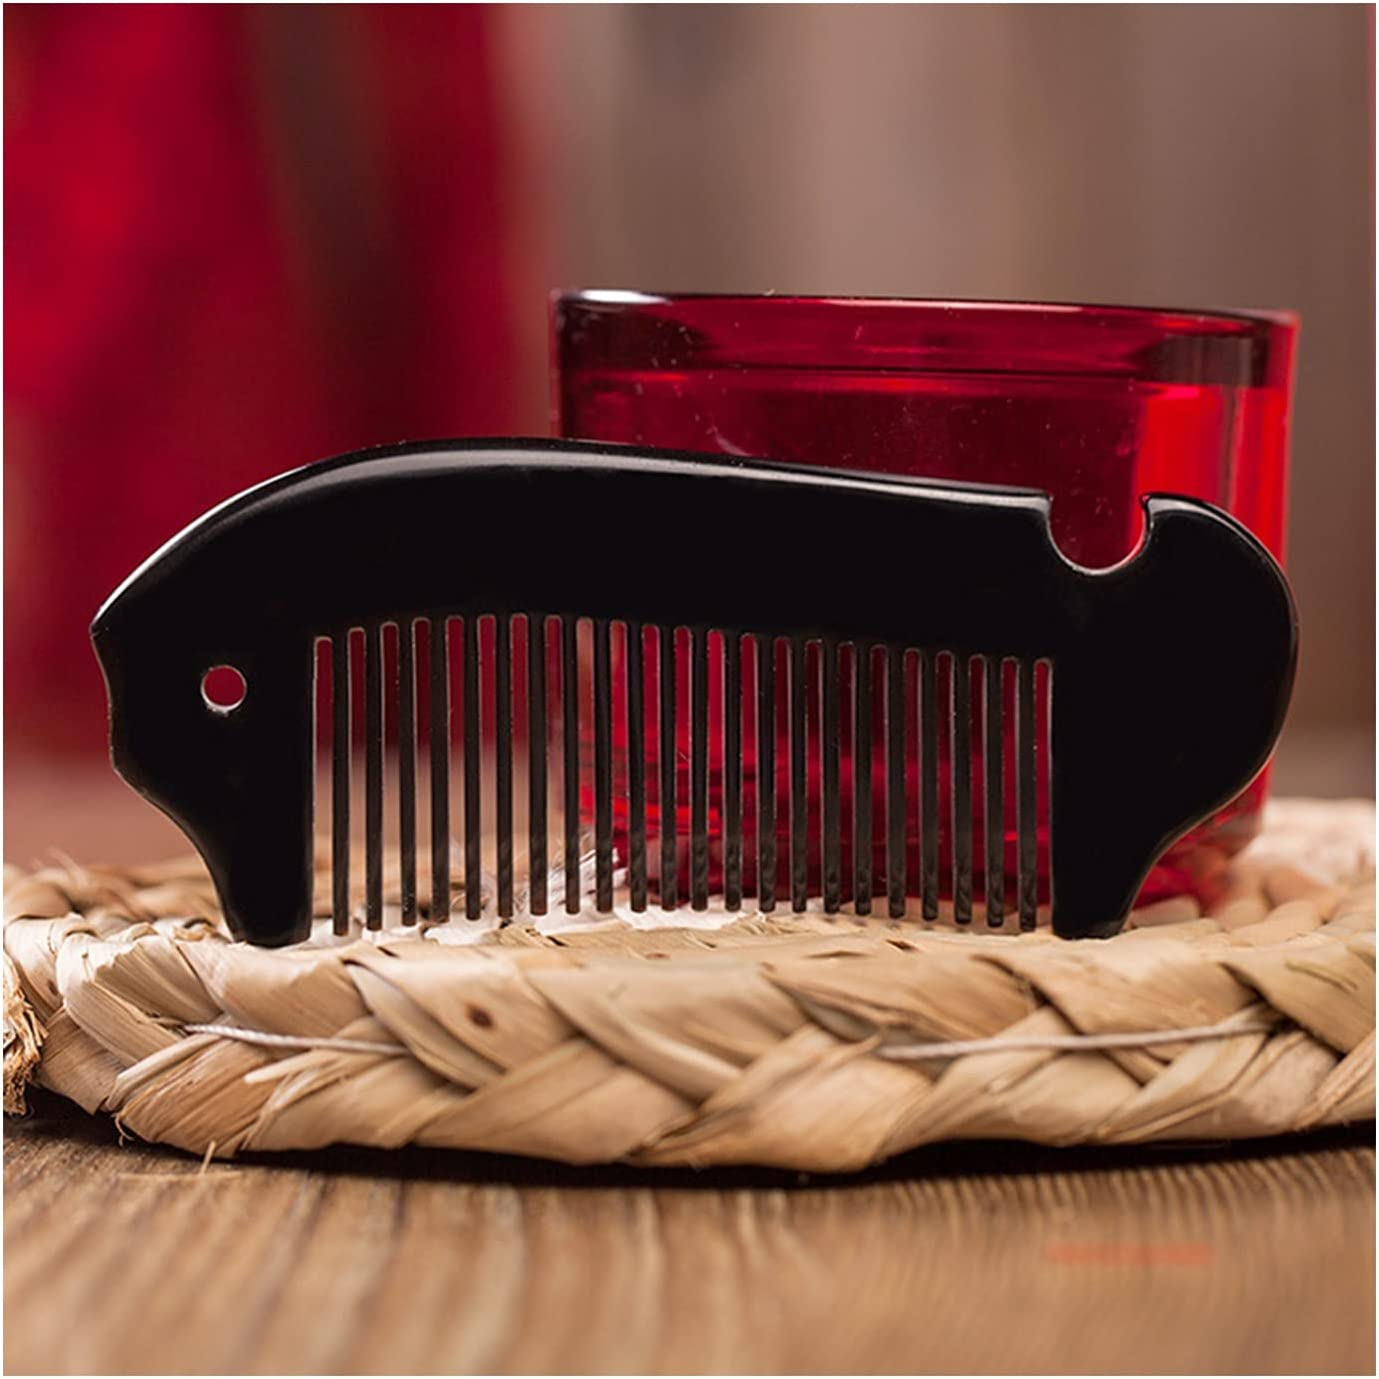 HEMOTONE Natural Horn outlet Hair Comb- with Sacramento Mall Explo Handcraft Decoration